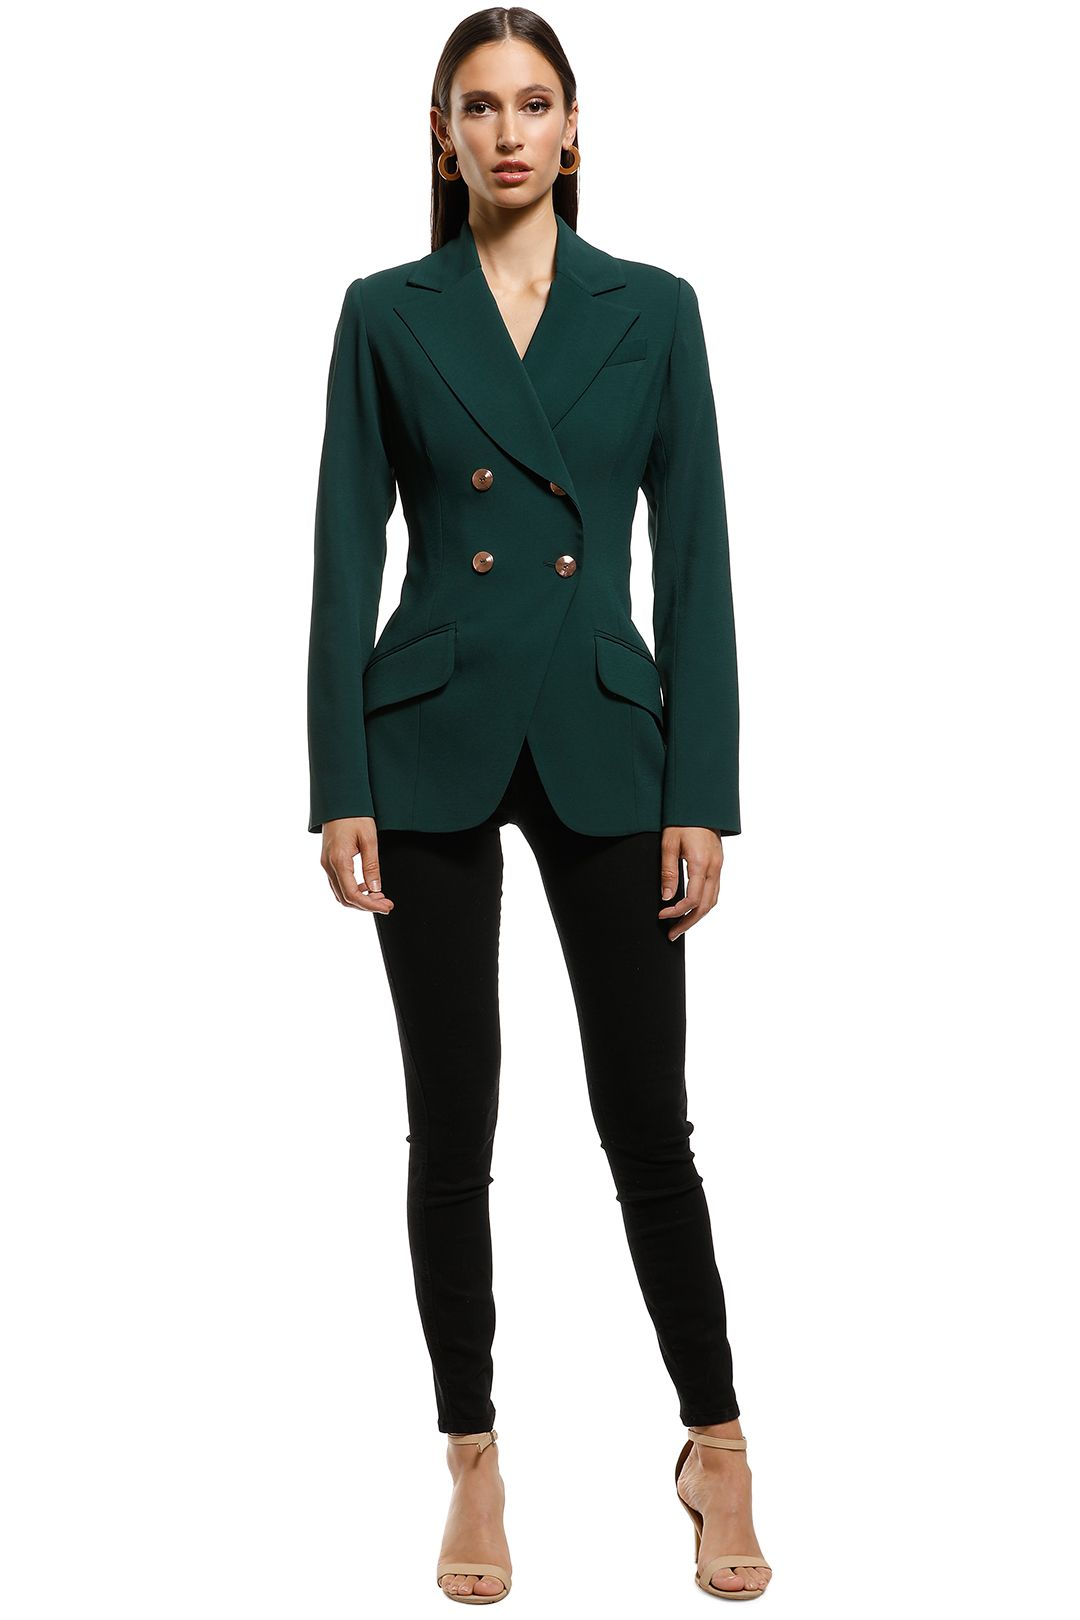 Ginger and Smart - Parity Jacket - Green - Front